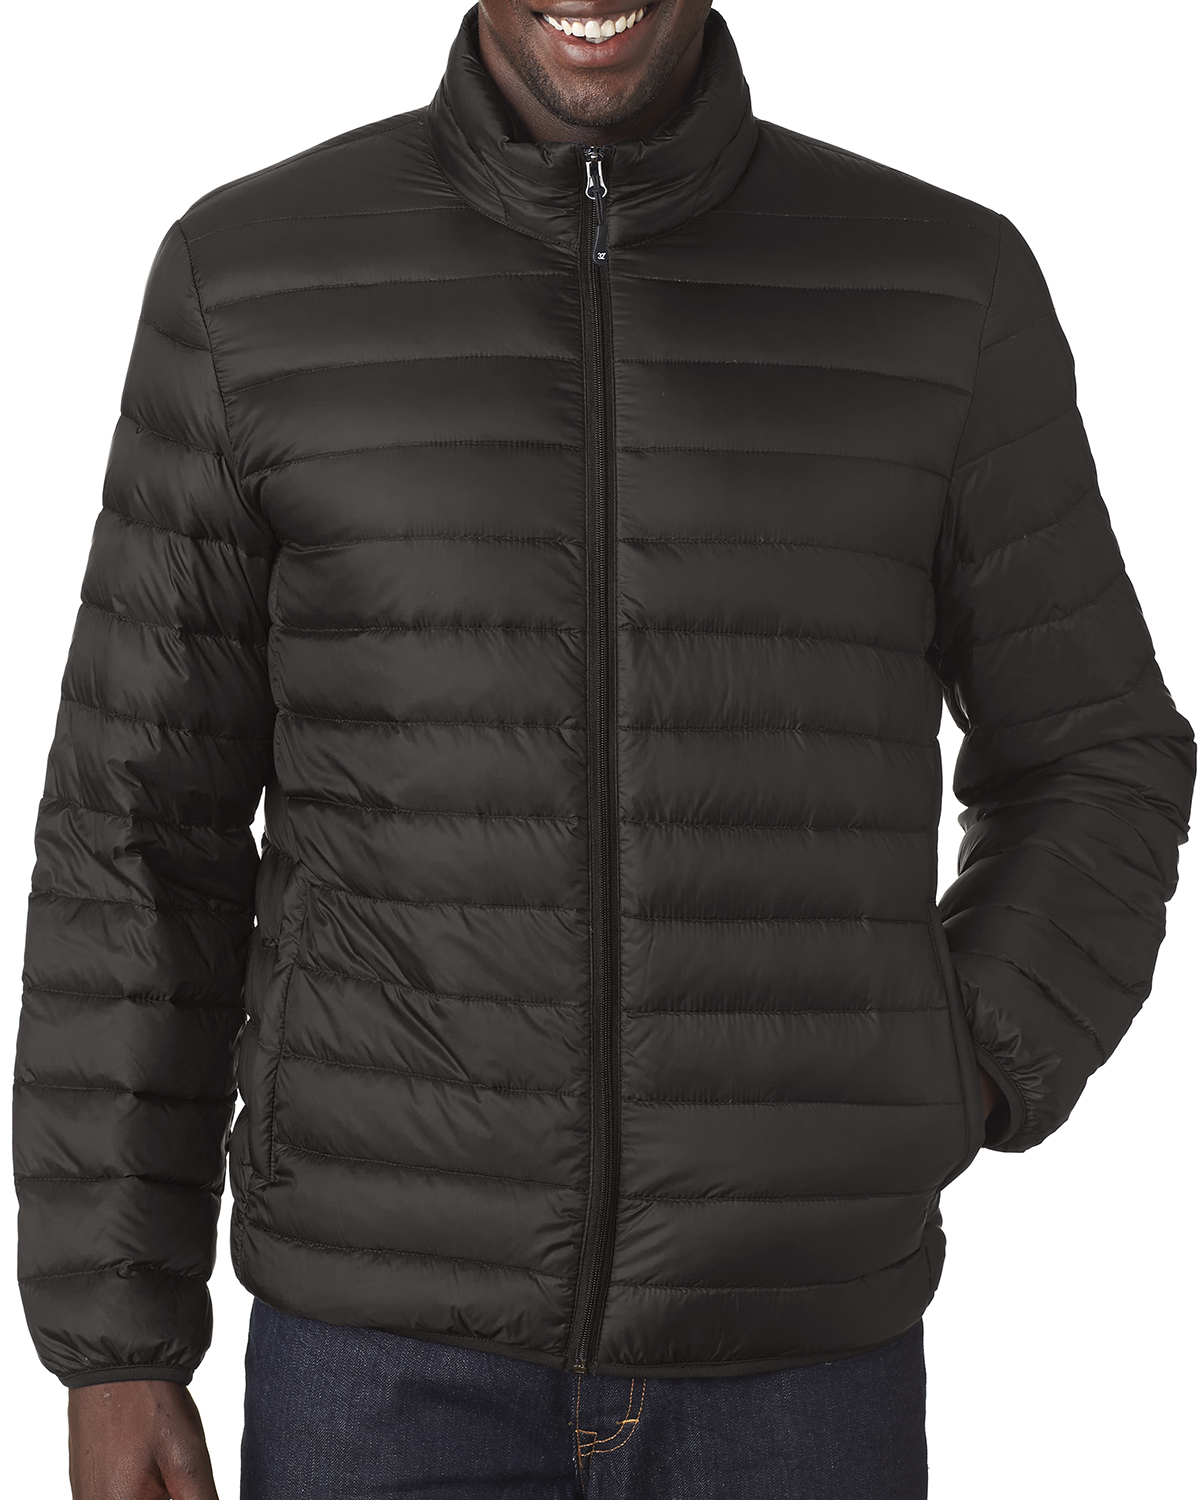 Weatherproof 15600 - Men's Packable Down Jacket